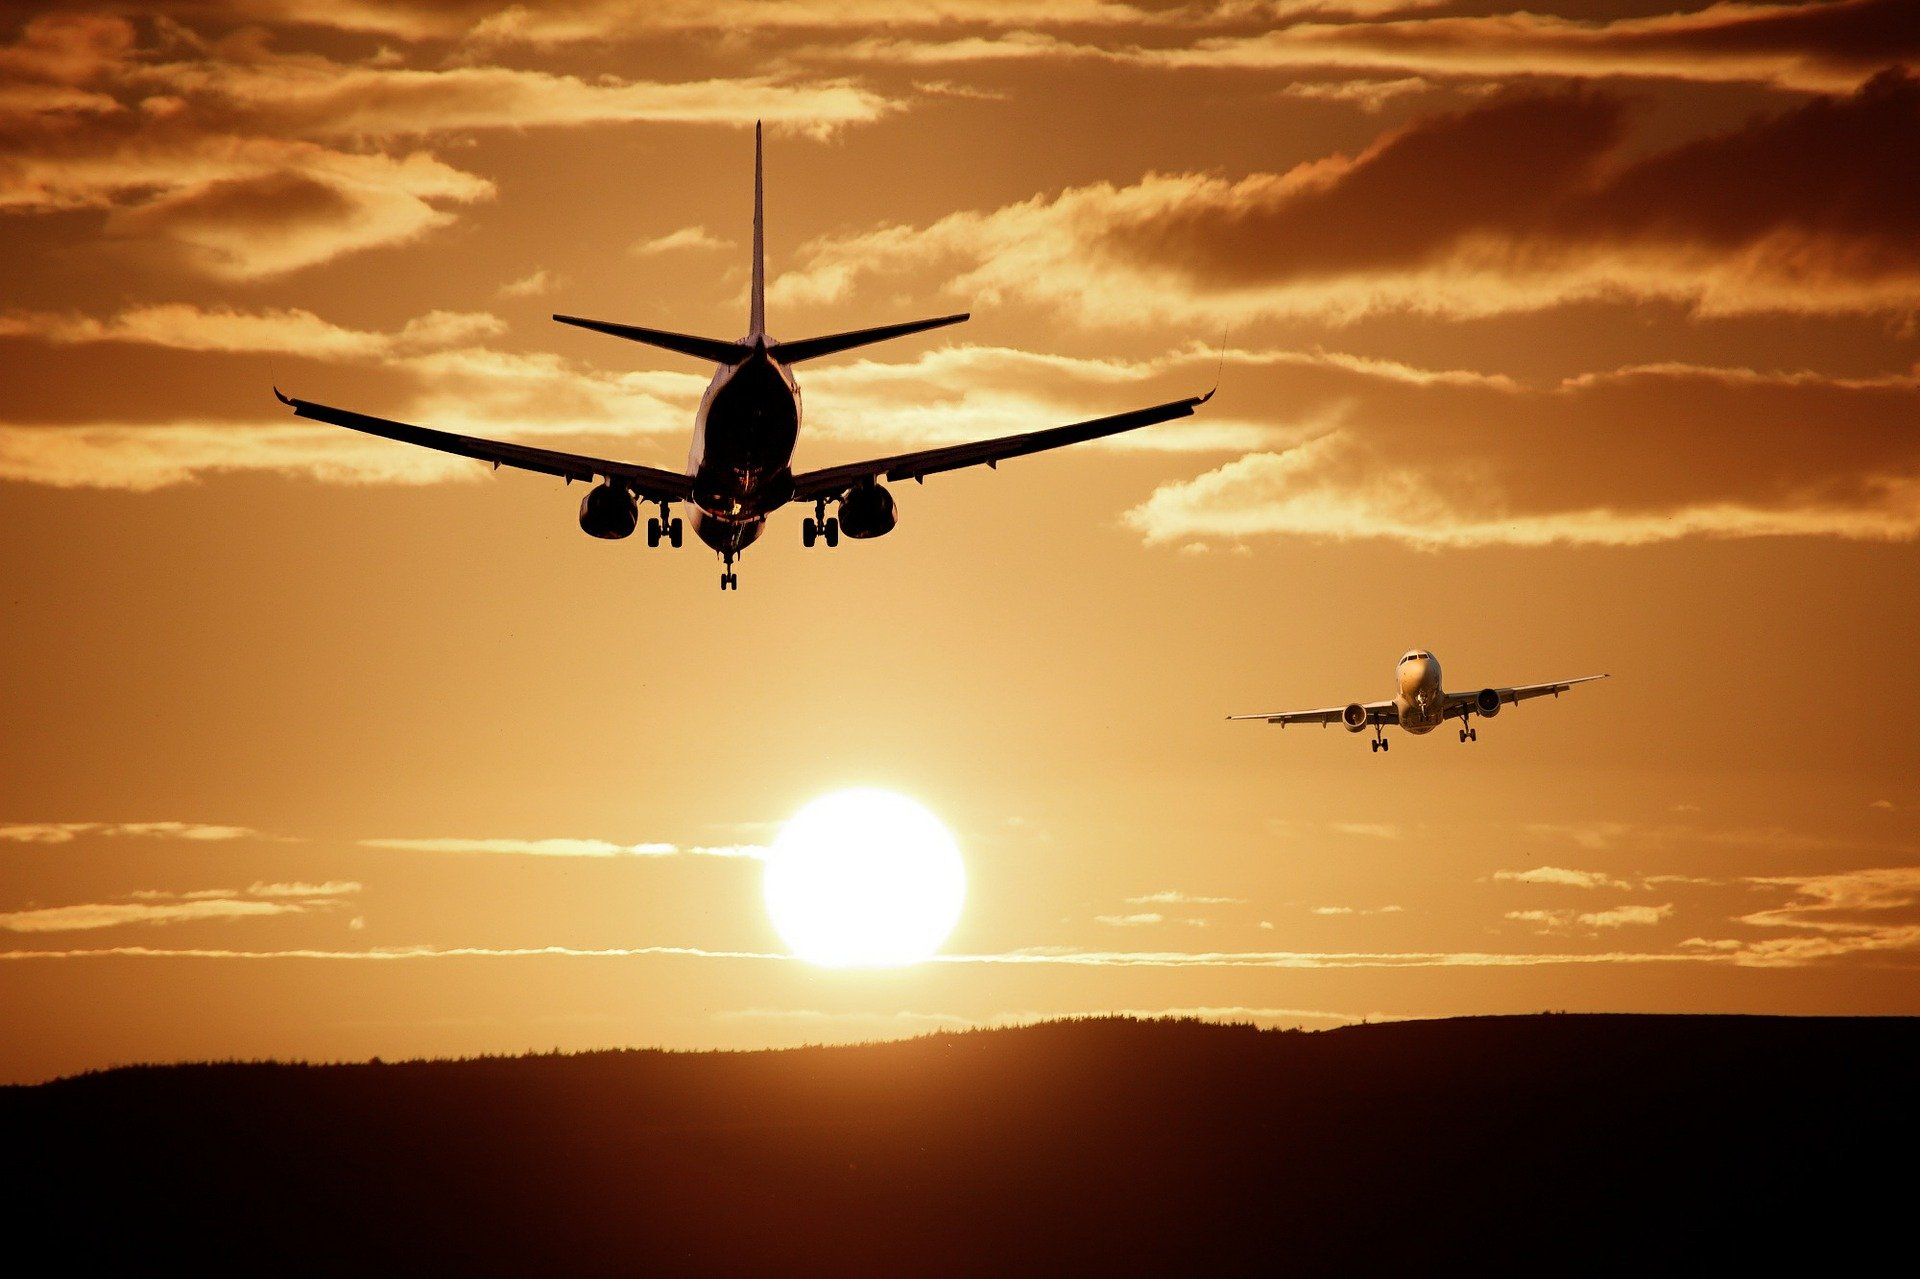 fastest commercial jet airliners, fastest jets, fastest passenger planes, commercial aviation, general aviation, aeroplanes, soundbarrier, speed, boeing, airbus, tupolev, ar france, british airways, Delta airways, pan american airways, best airlines, travelling, luxurious travel, destinations